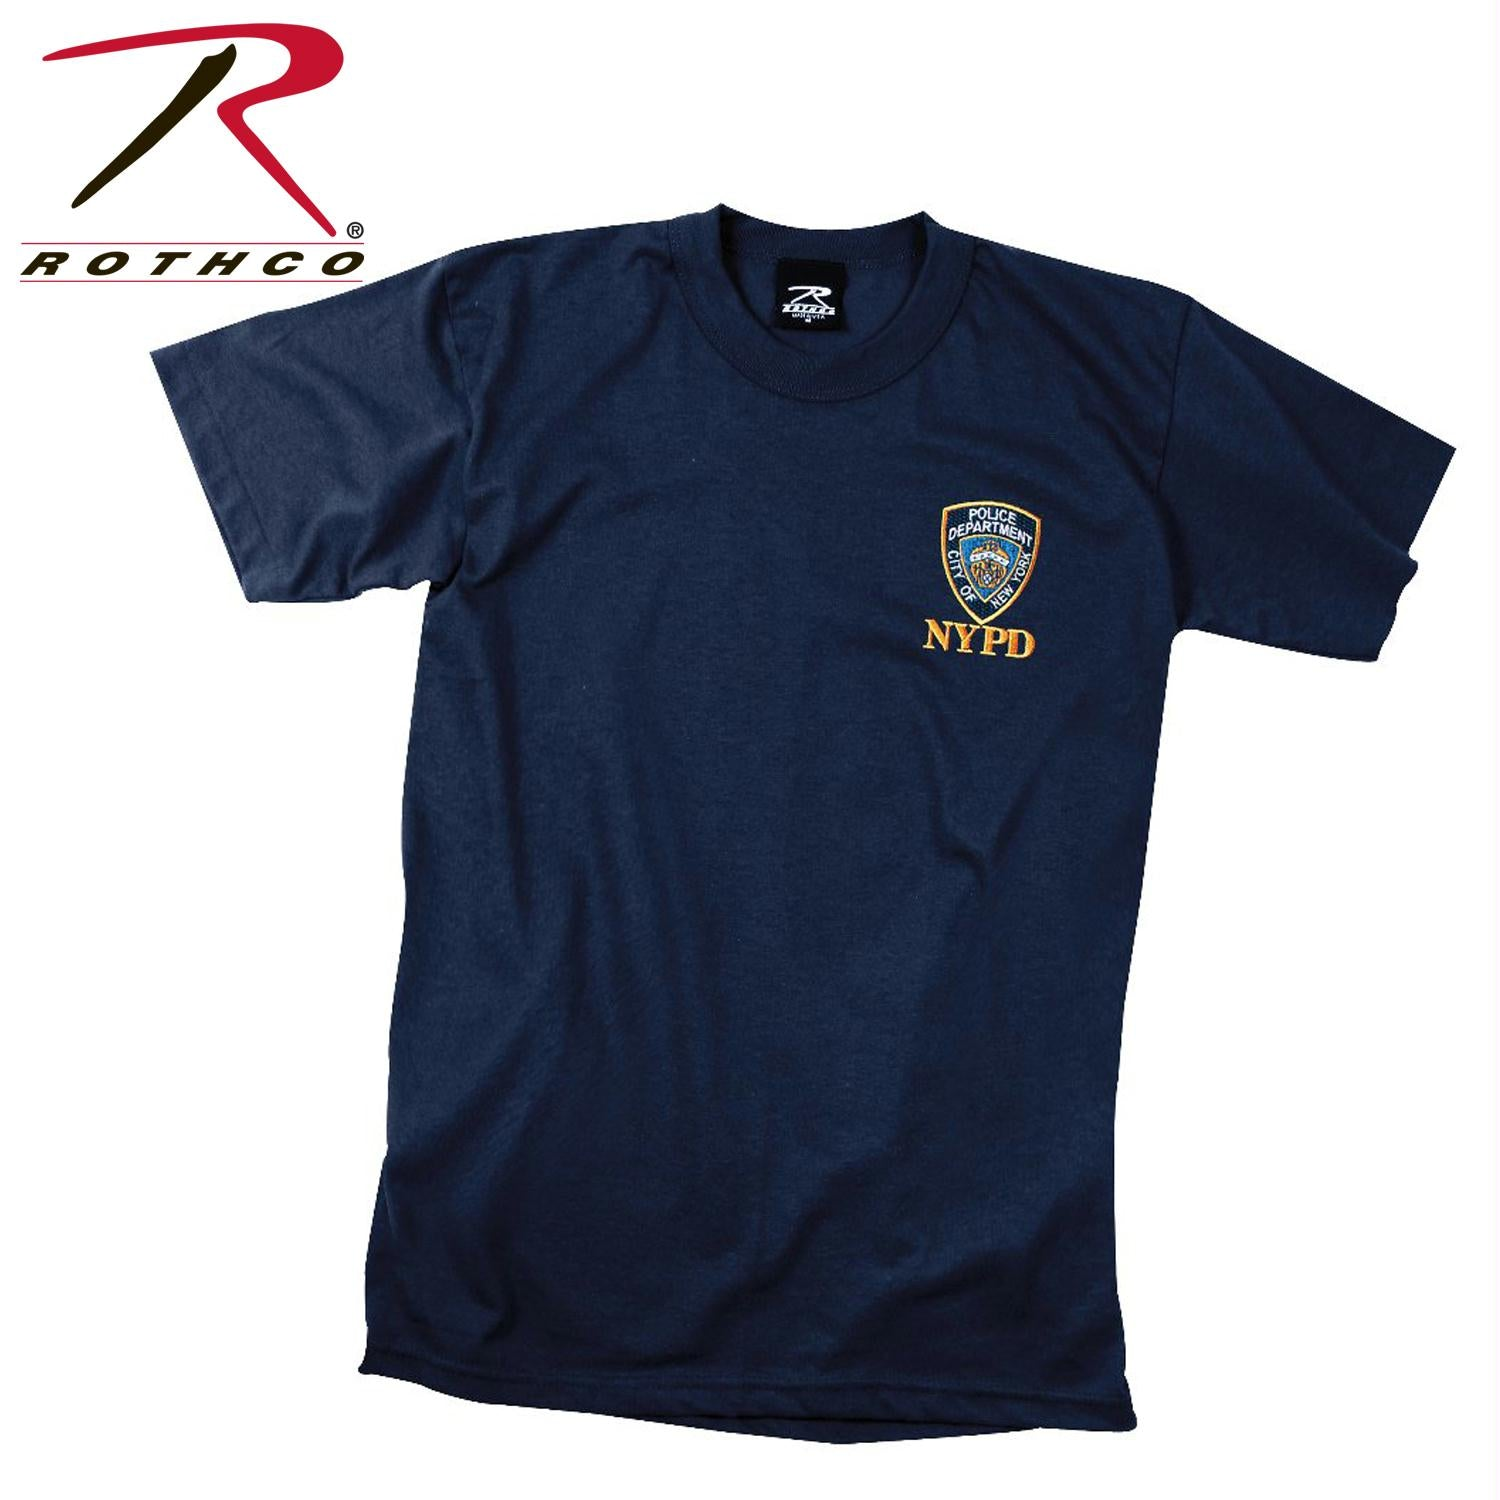 Rothco Officially Licensed NYPD Emblem T-shirt - XL